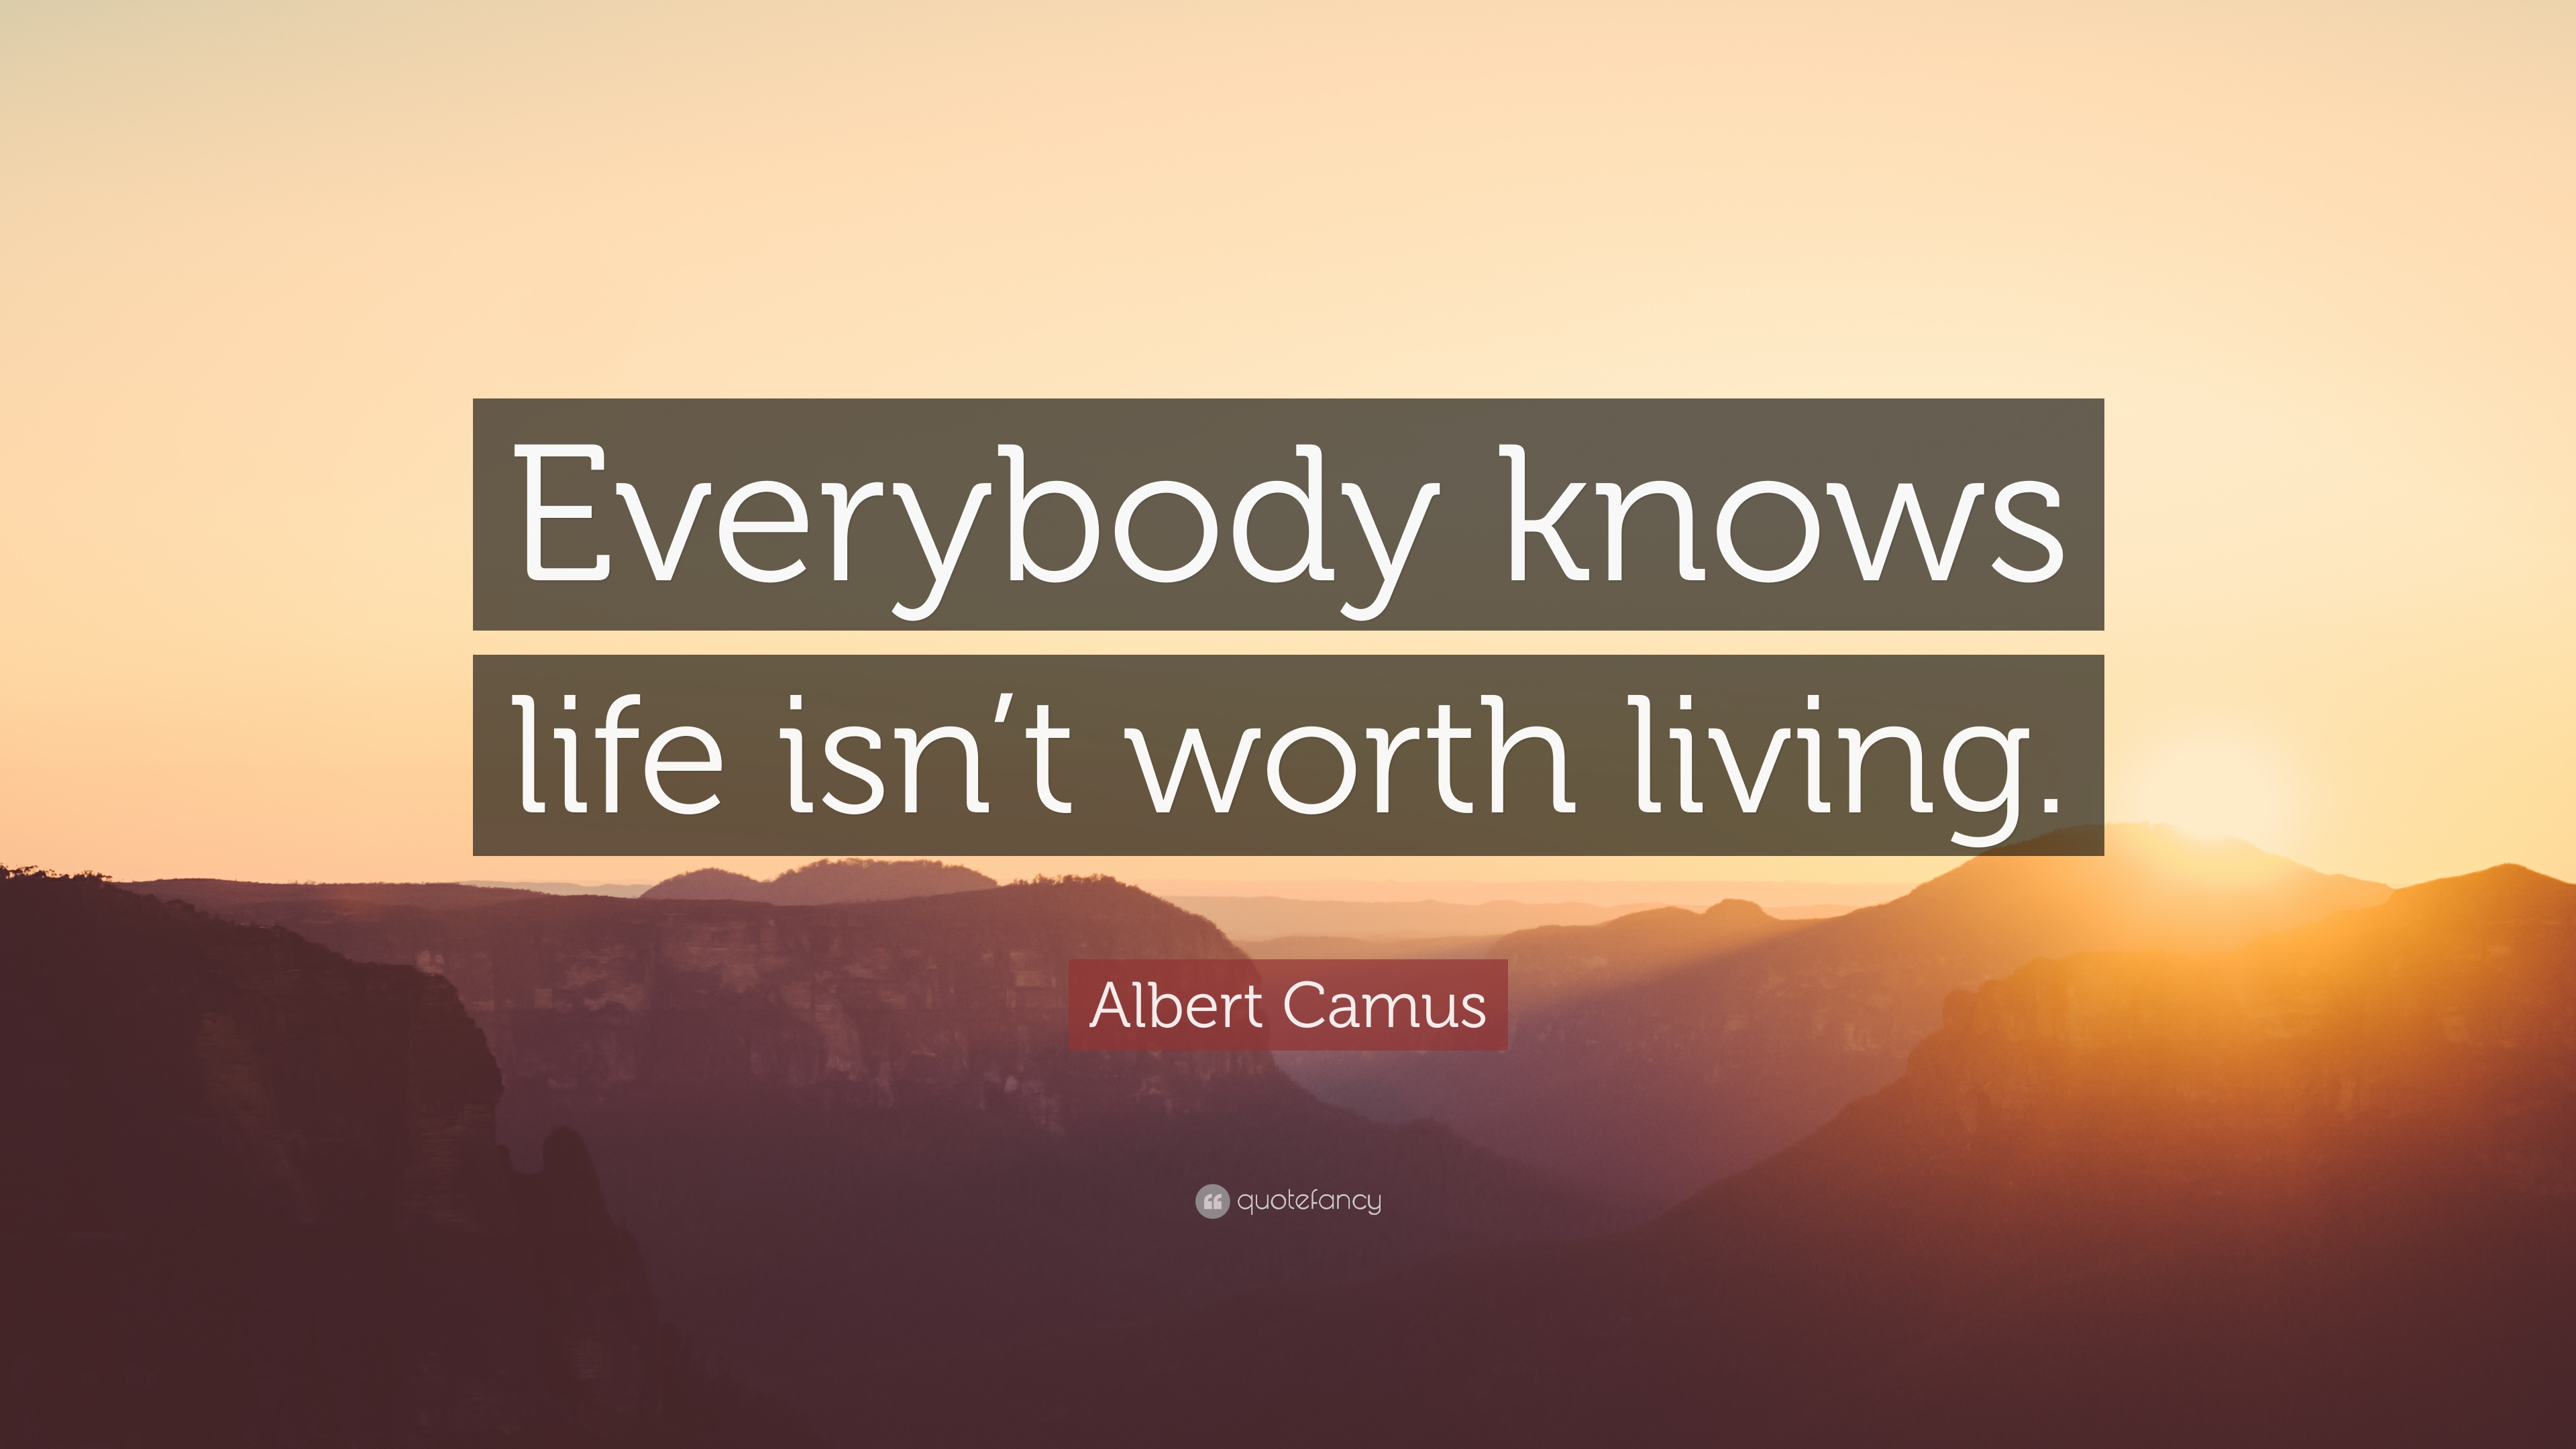 Albert Camus Quote: Everybody knows life isnt worth living.